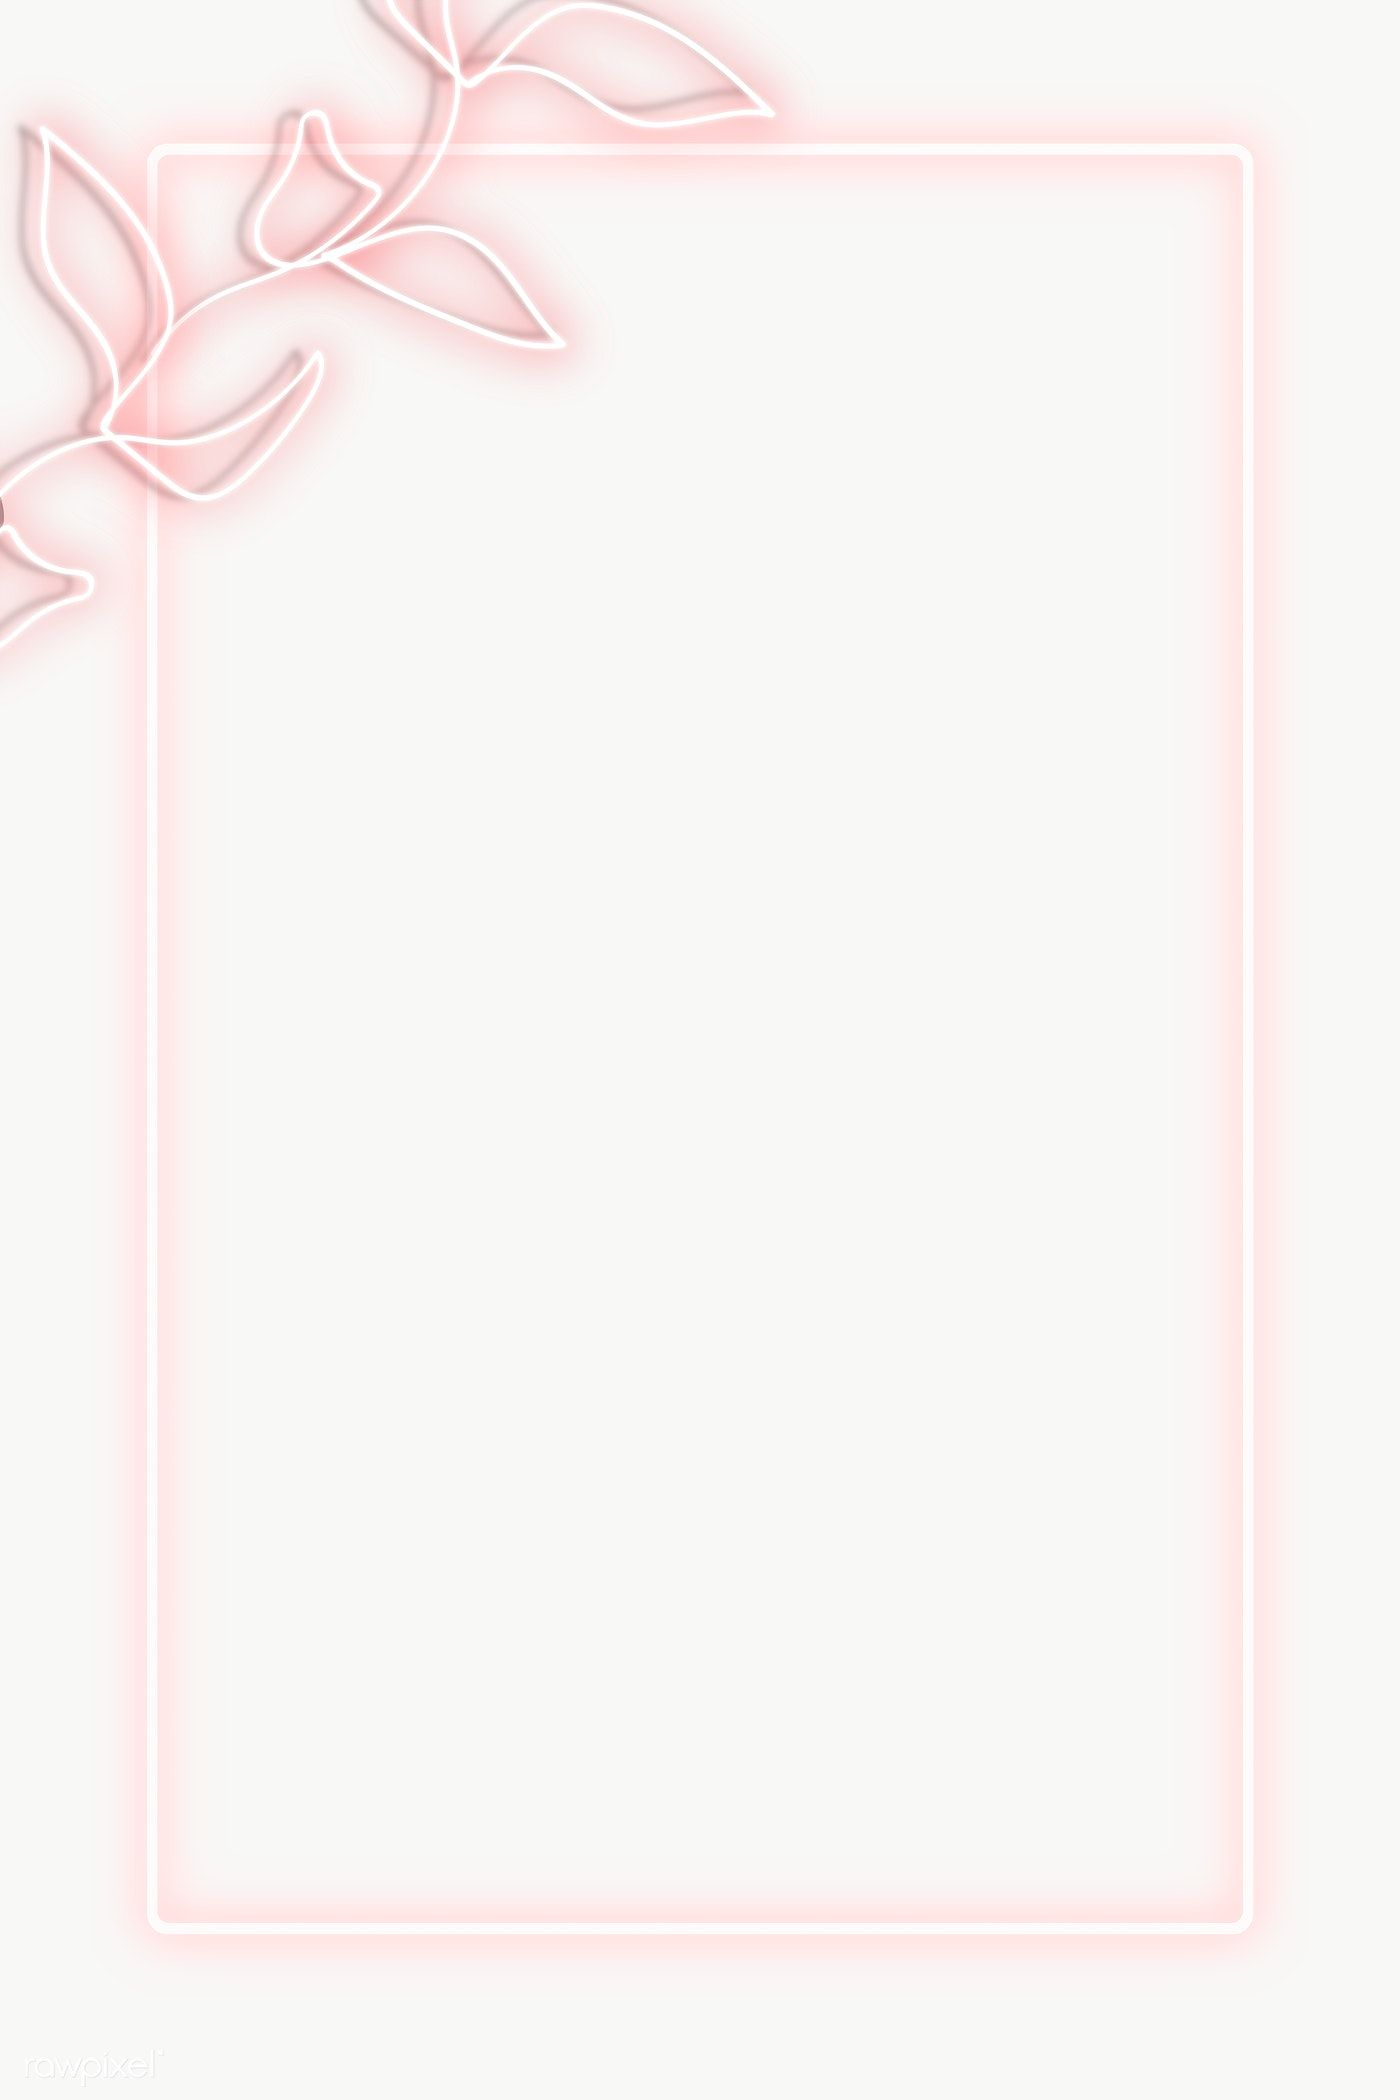 Old Rose Neon Lights Frame With Leaves Transparent Png Premium Image By Rawpixel Com Nunny Pink Neon Lights Neon Lighting Frame